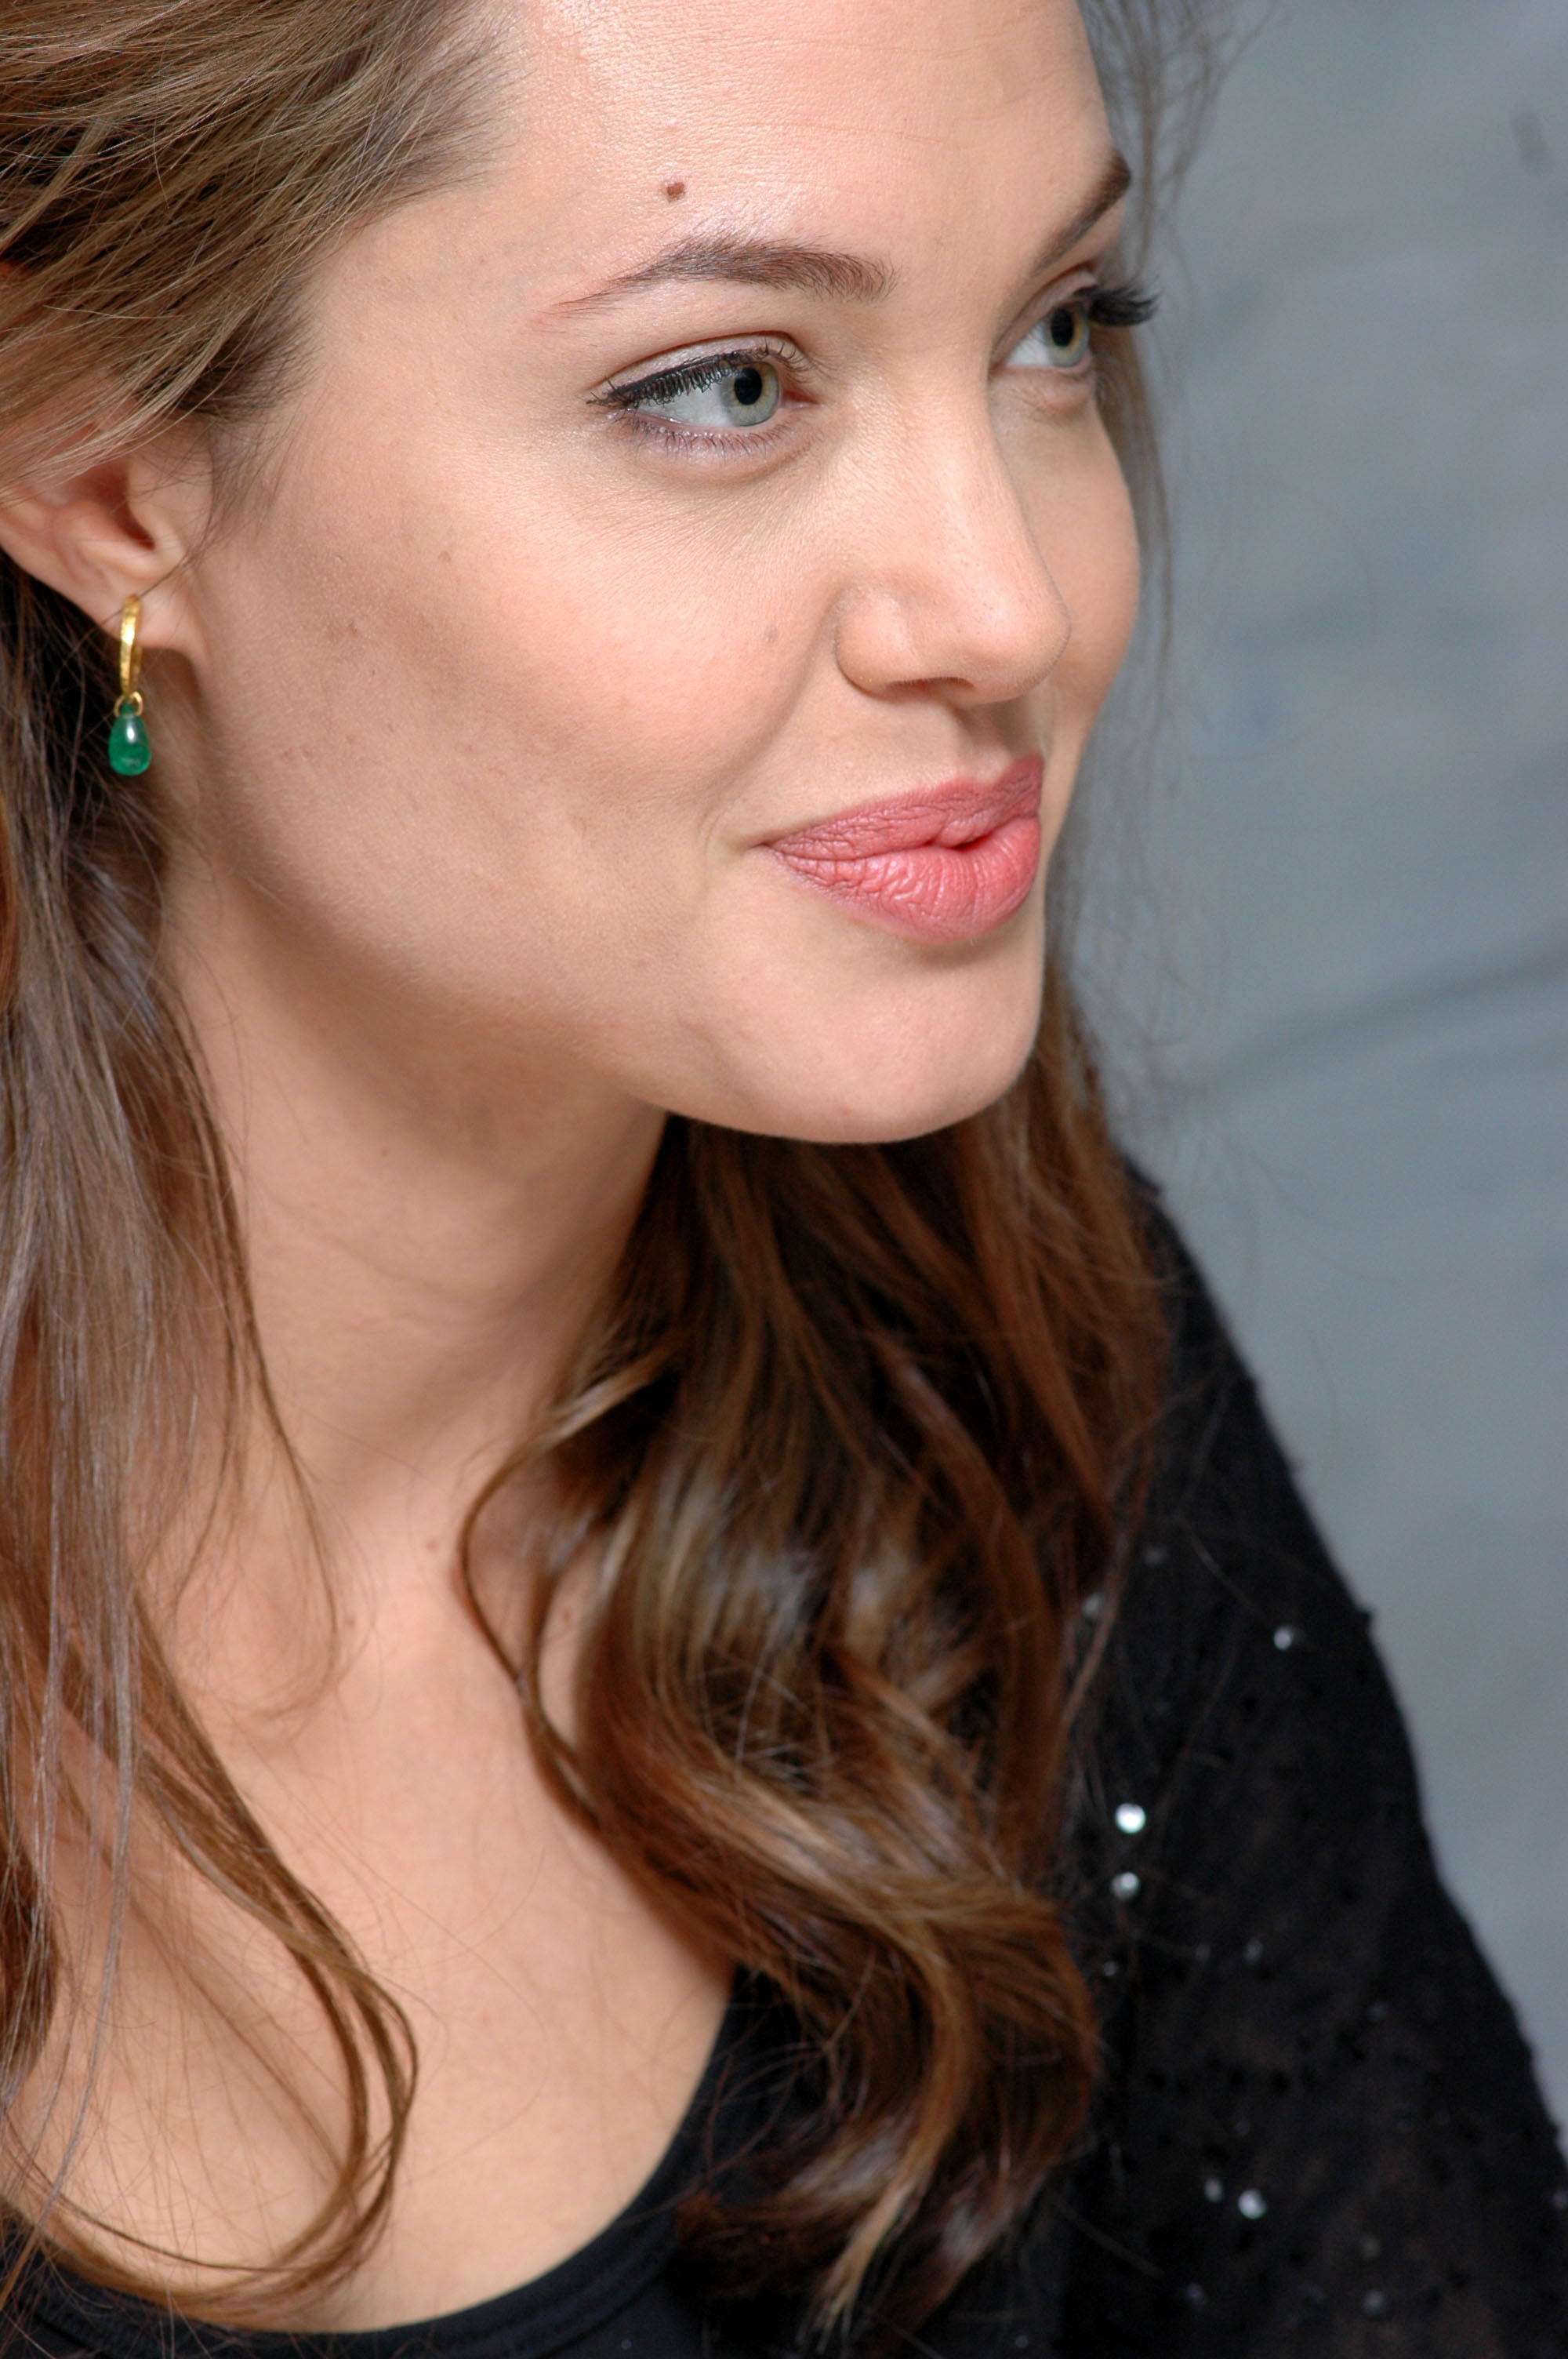 best images about Angelina Jolie on Pinterest